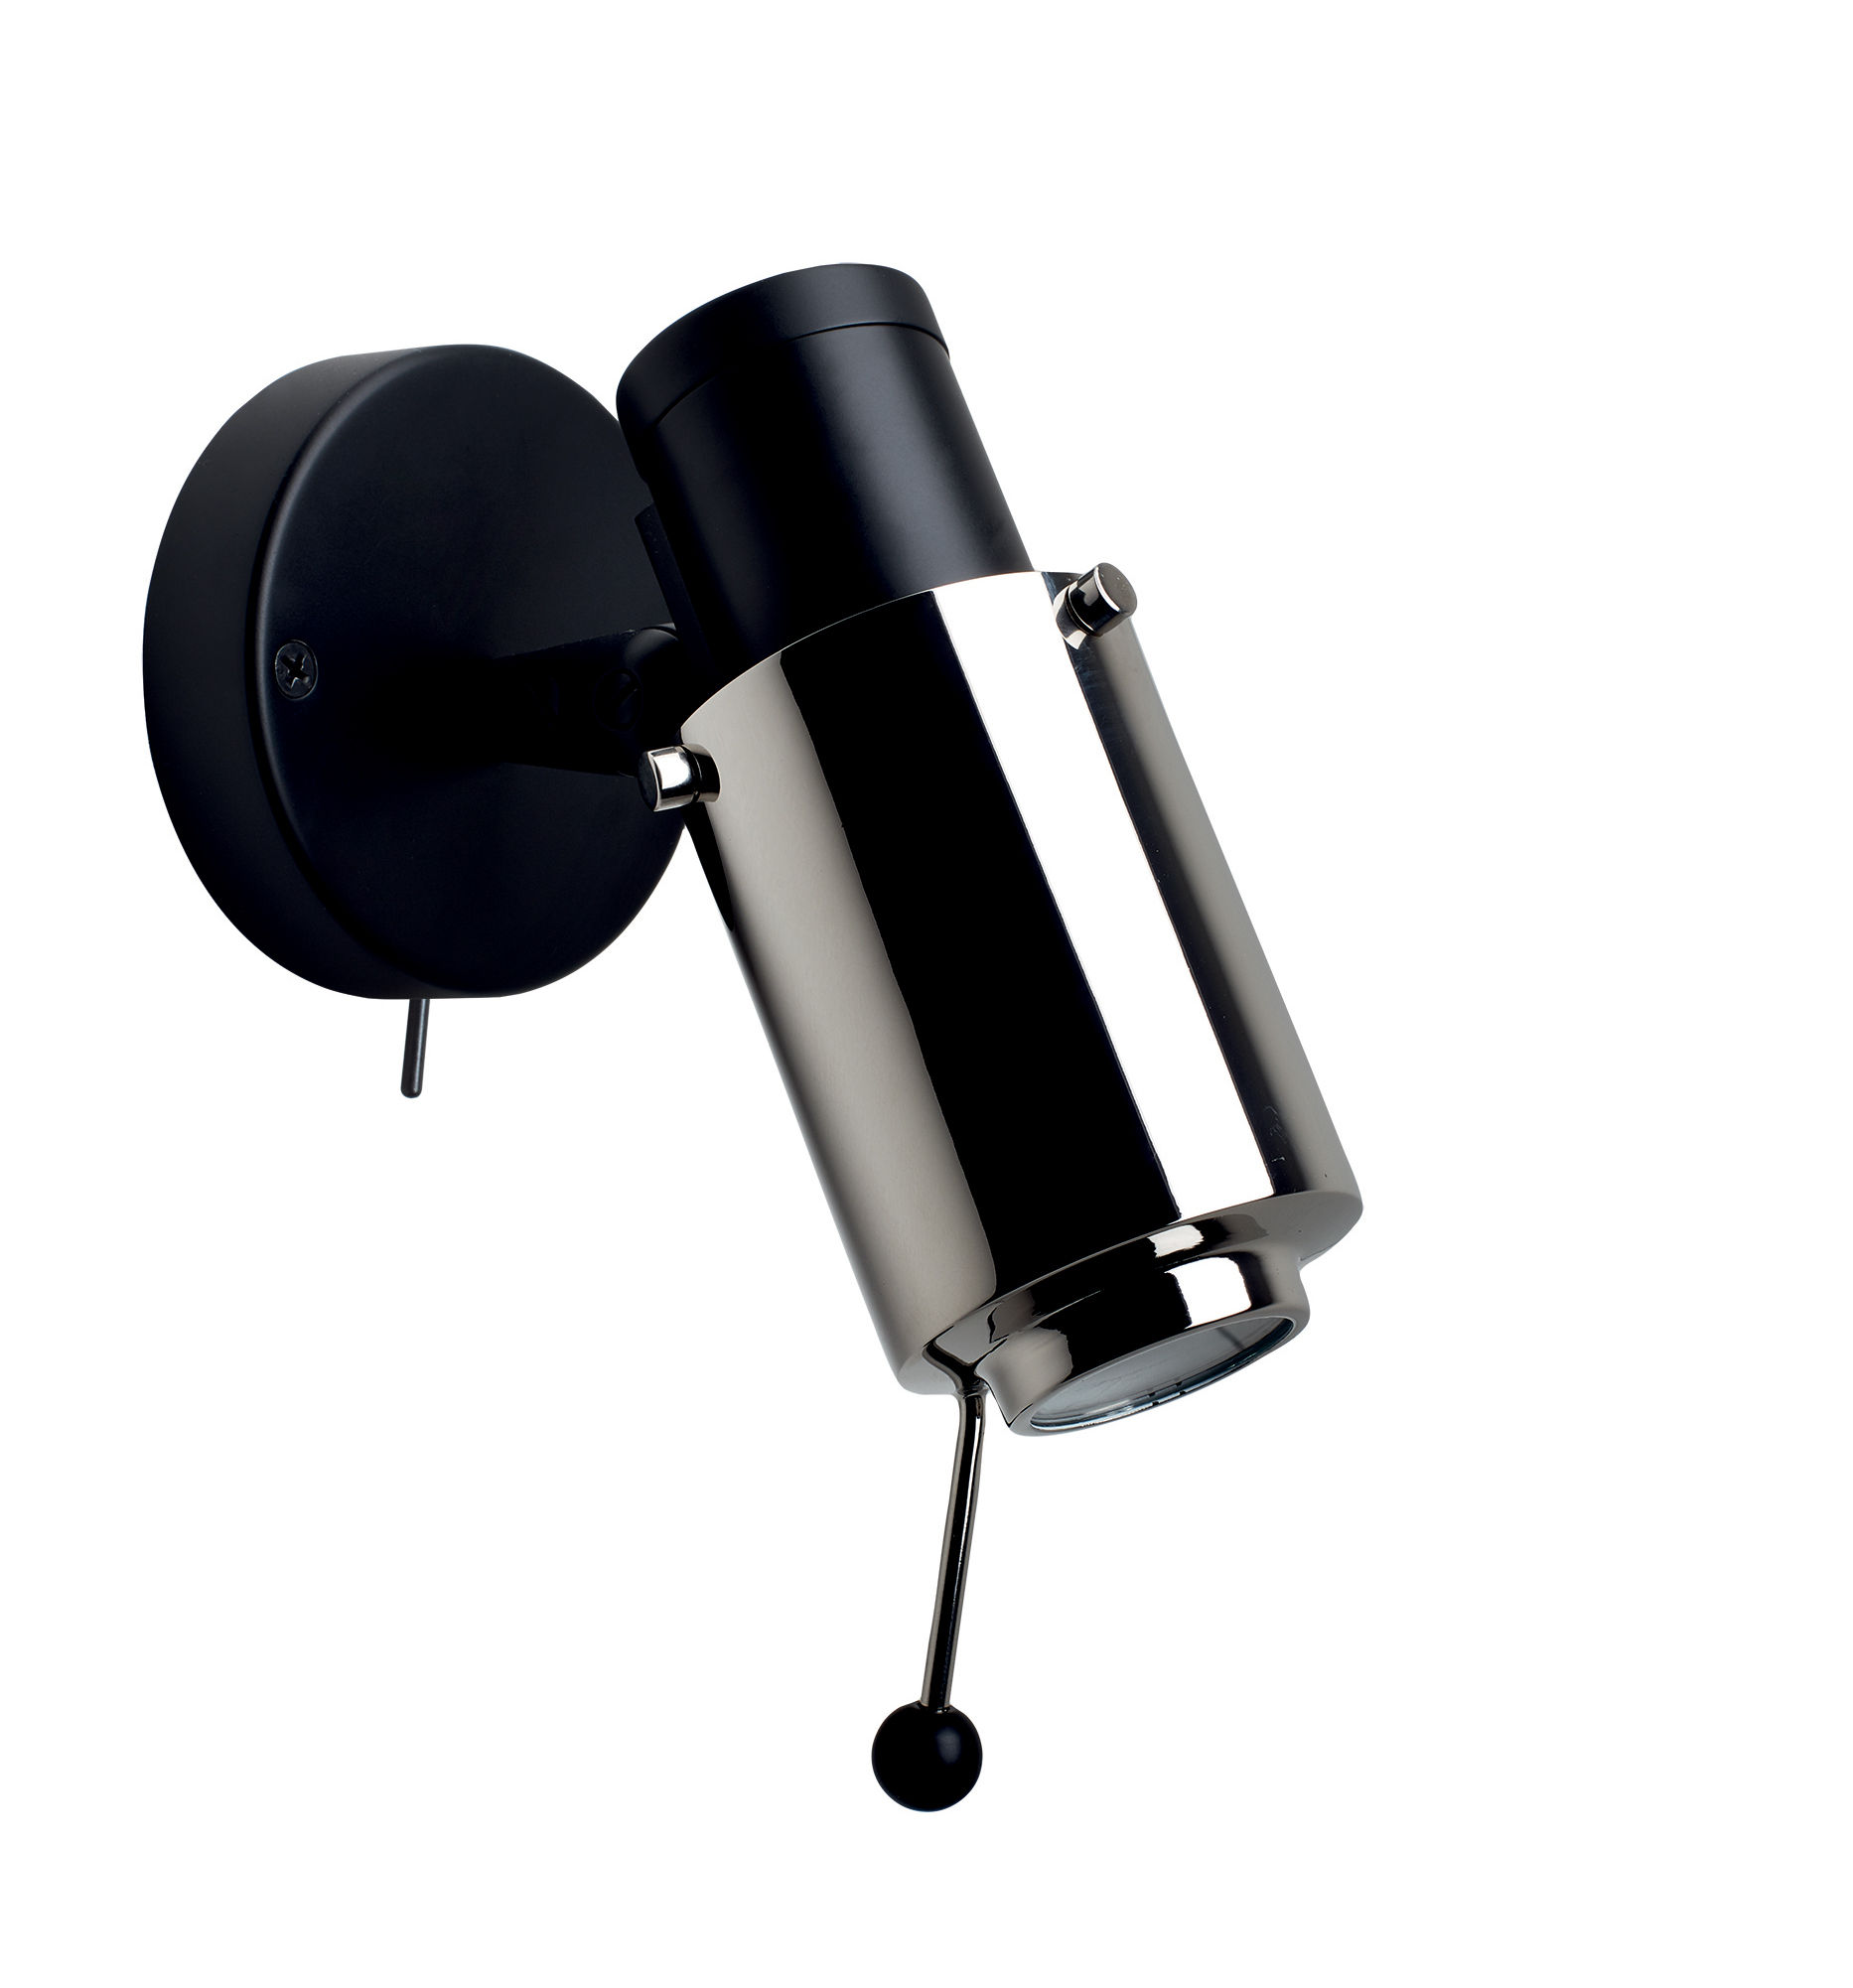 Lighting - Wall Lights - Biny Spot LED Wall light - / 1955 reissue - With switch by DCW éditions - Black / Chrome tube - Aluminium, Steel